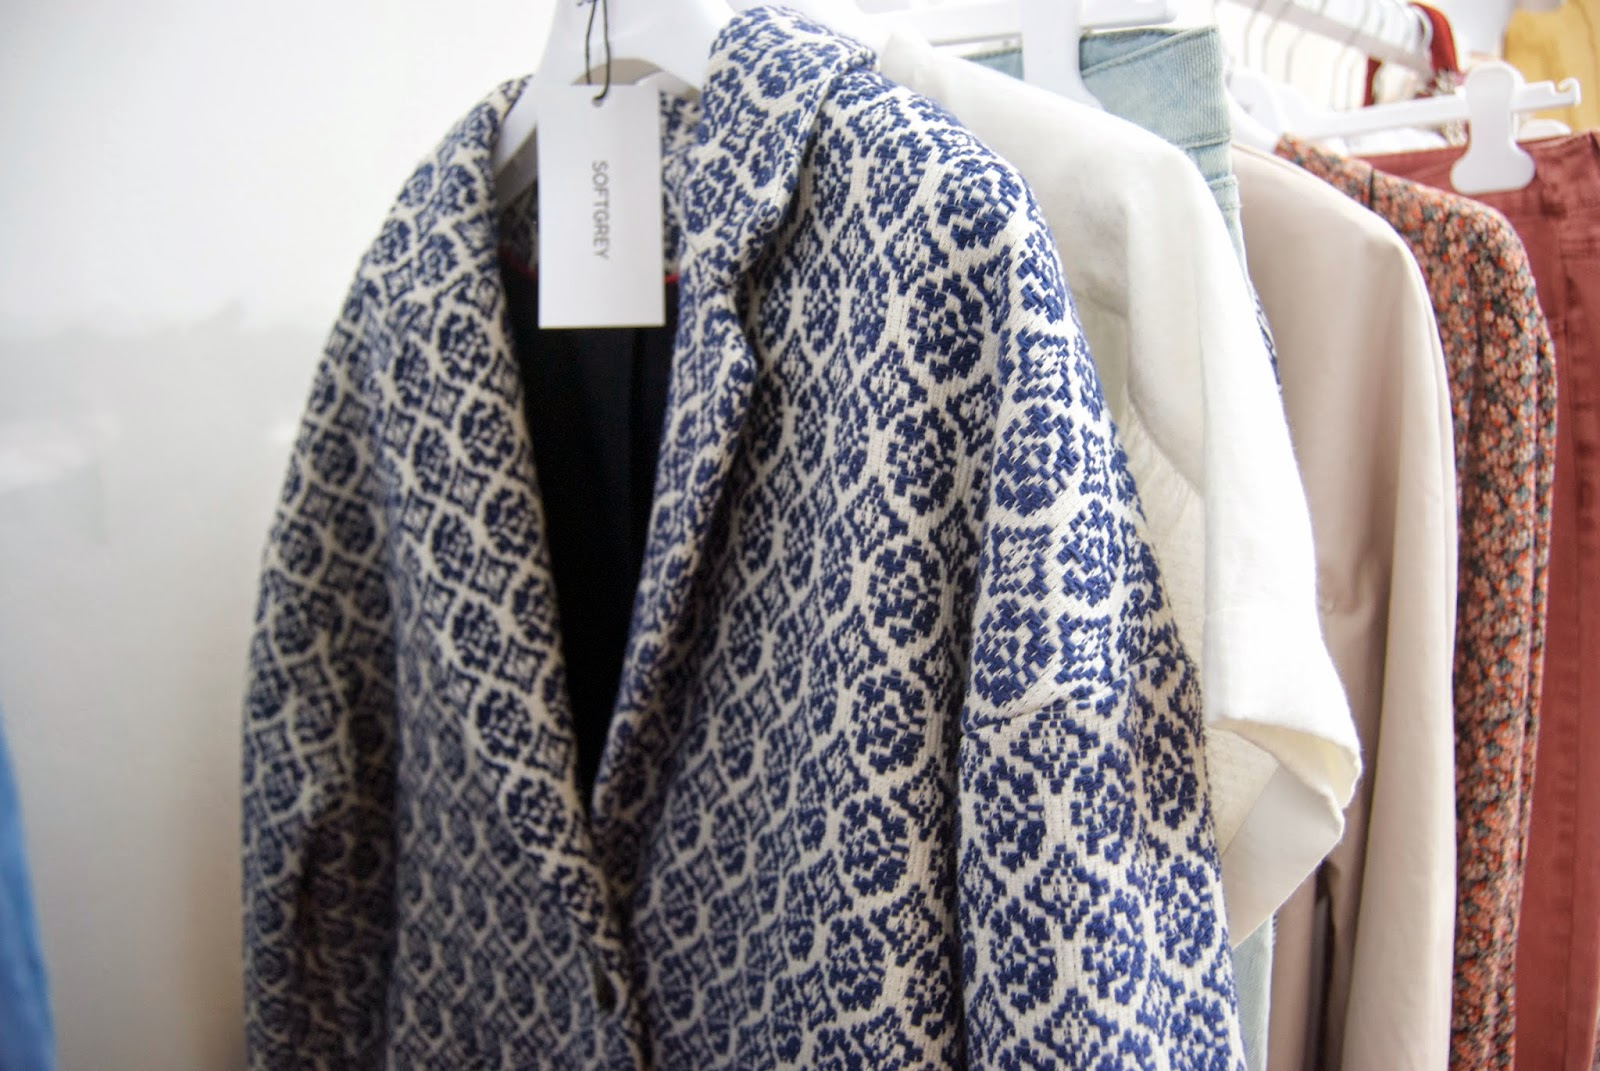 La Redoute SS15 Press Day